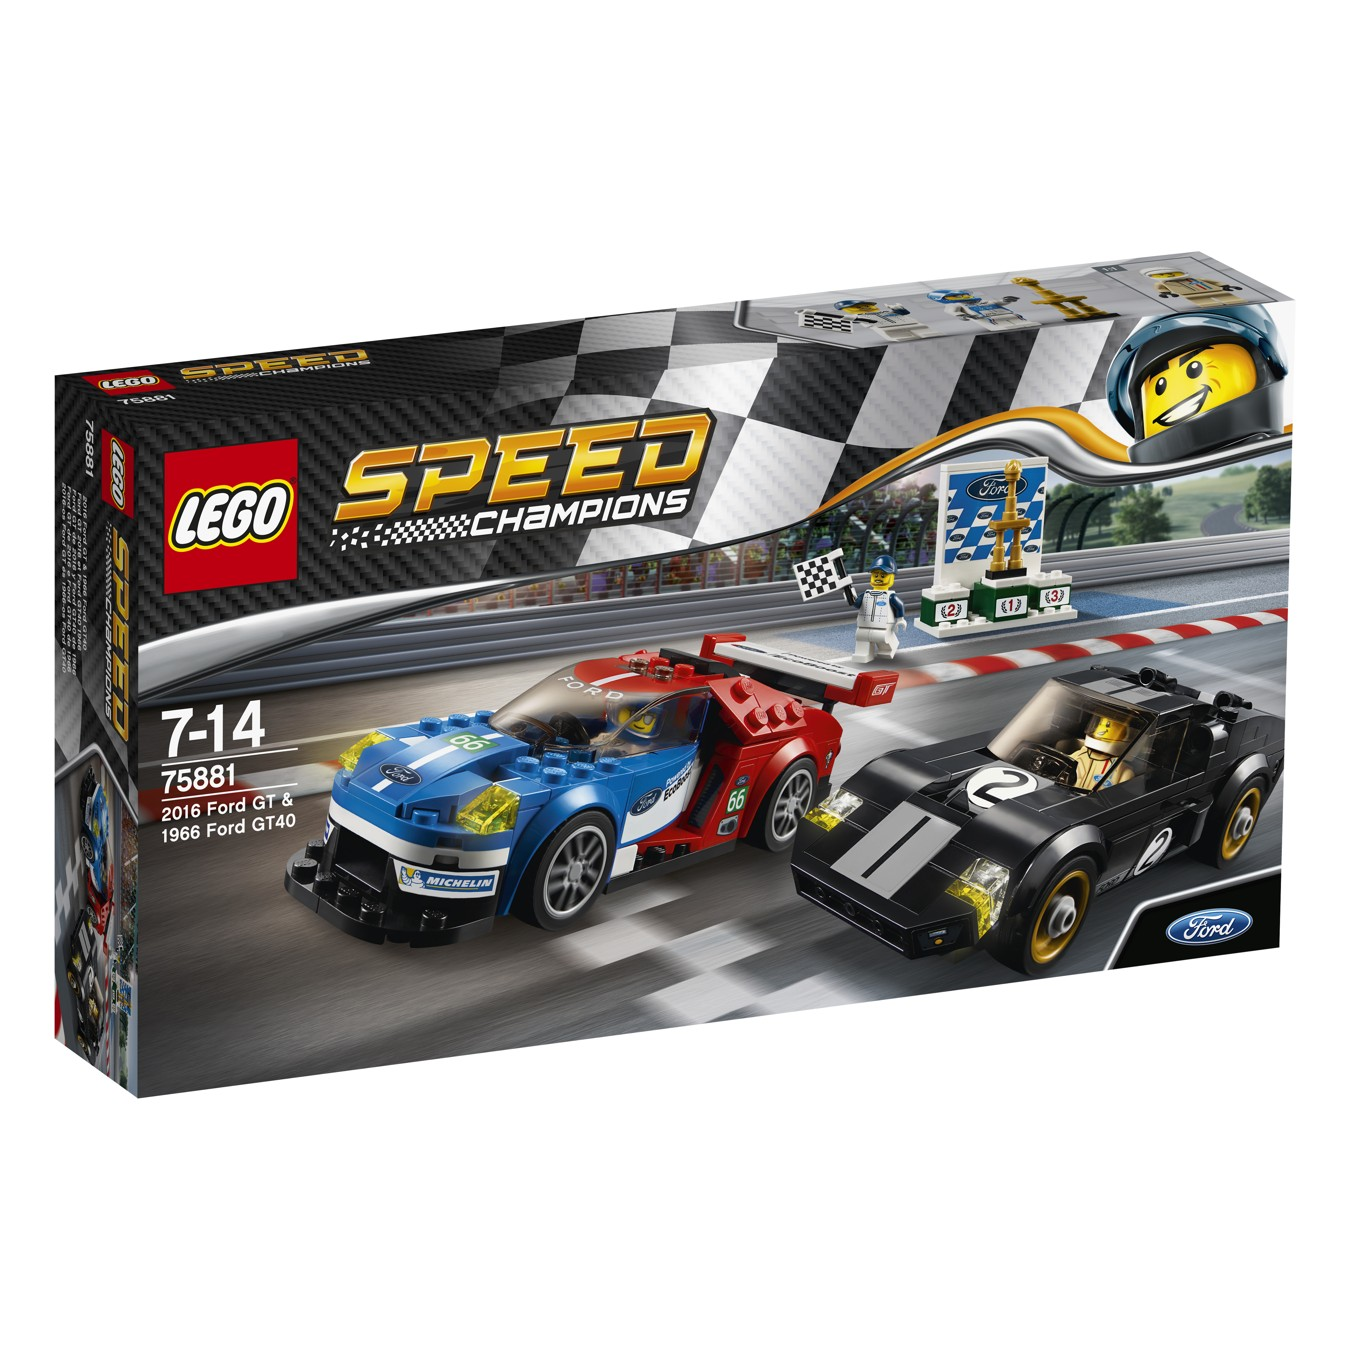 LEGO® Speed Champions 75881 2016 Ford GT & 1966 Ford GT40